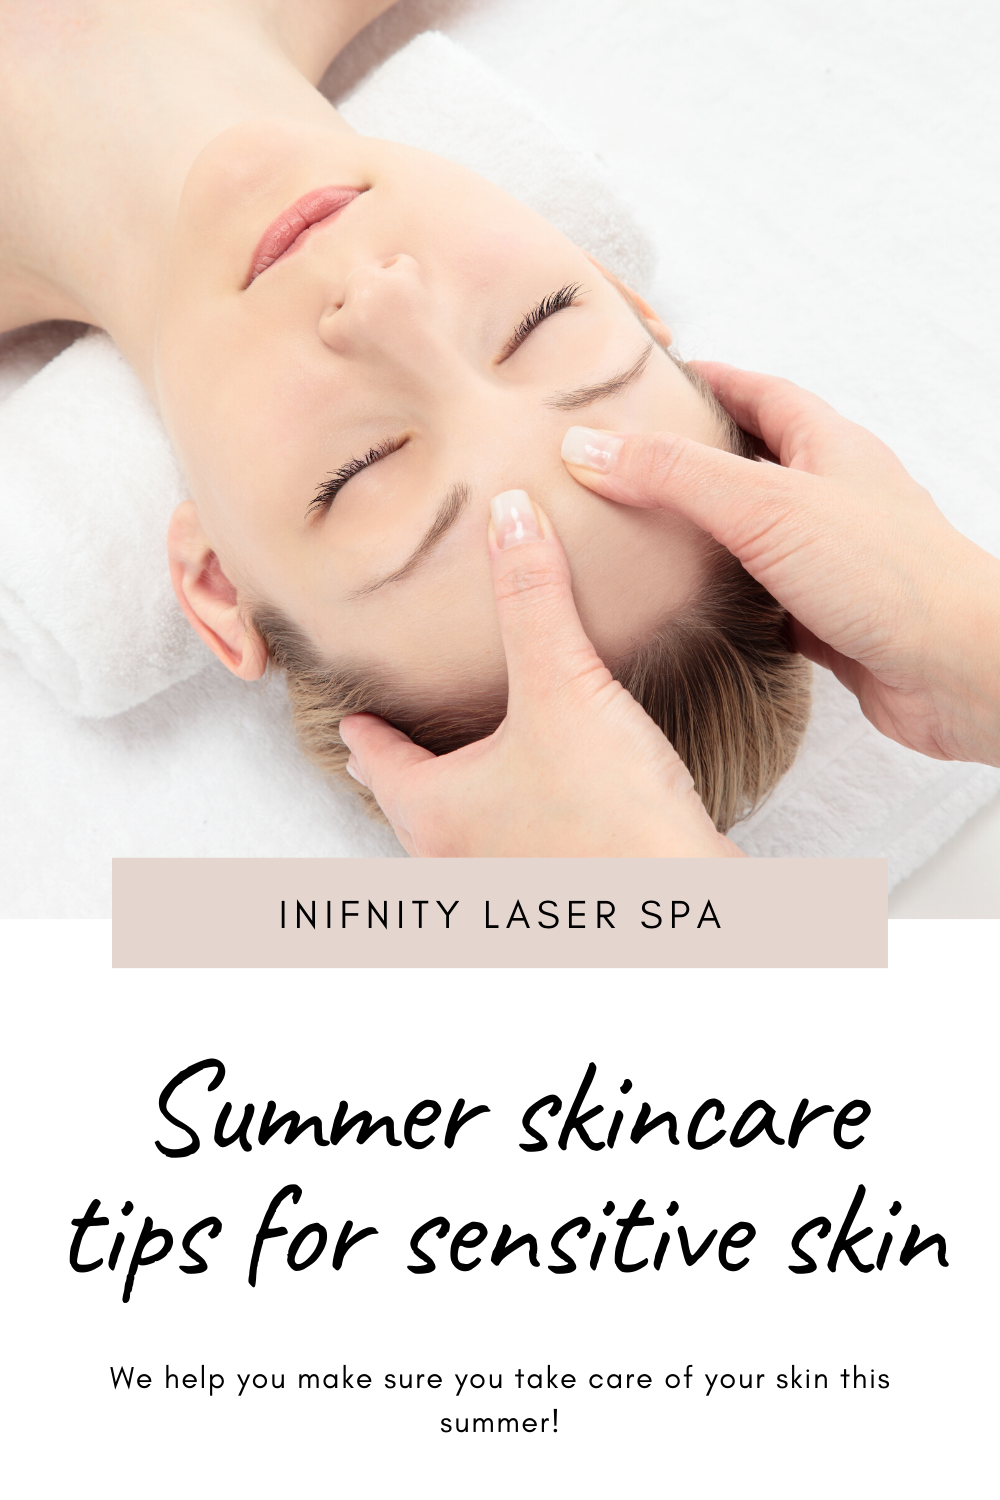 Best Laser Hair Removal In Nyc Infinity Laser Spa In 2020 Facial Spa Spa Treatments Top Skin Care Products